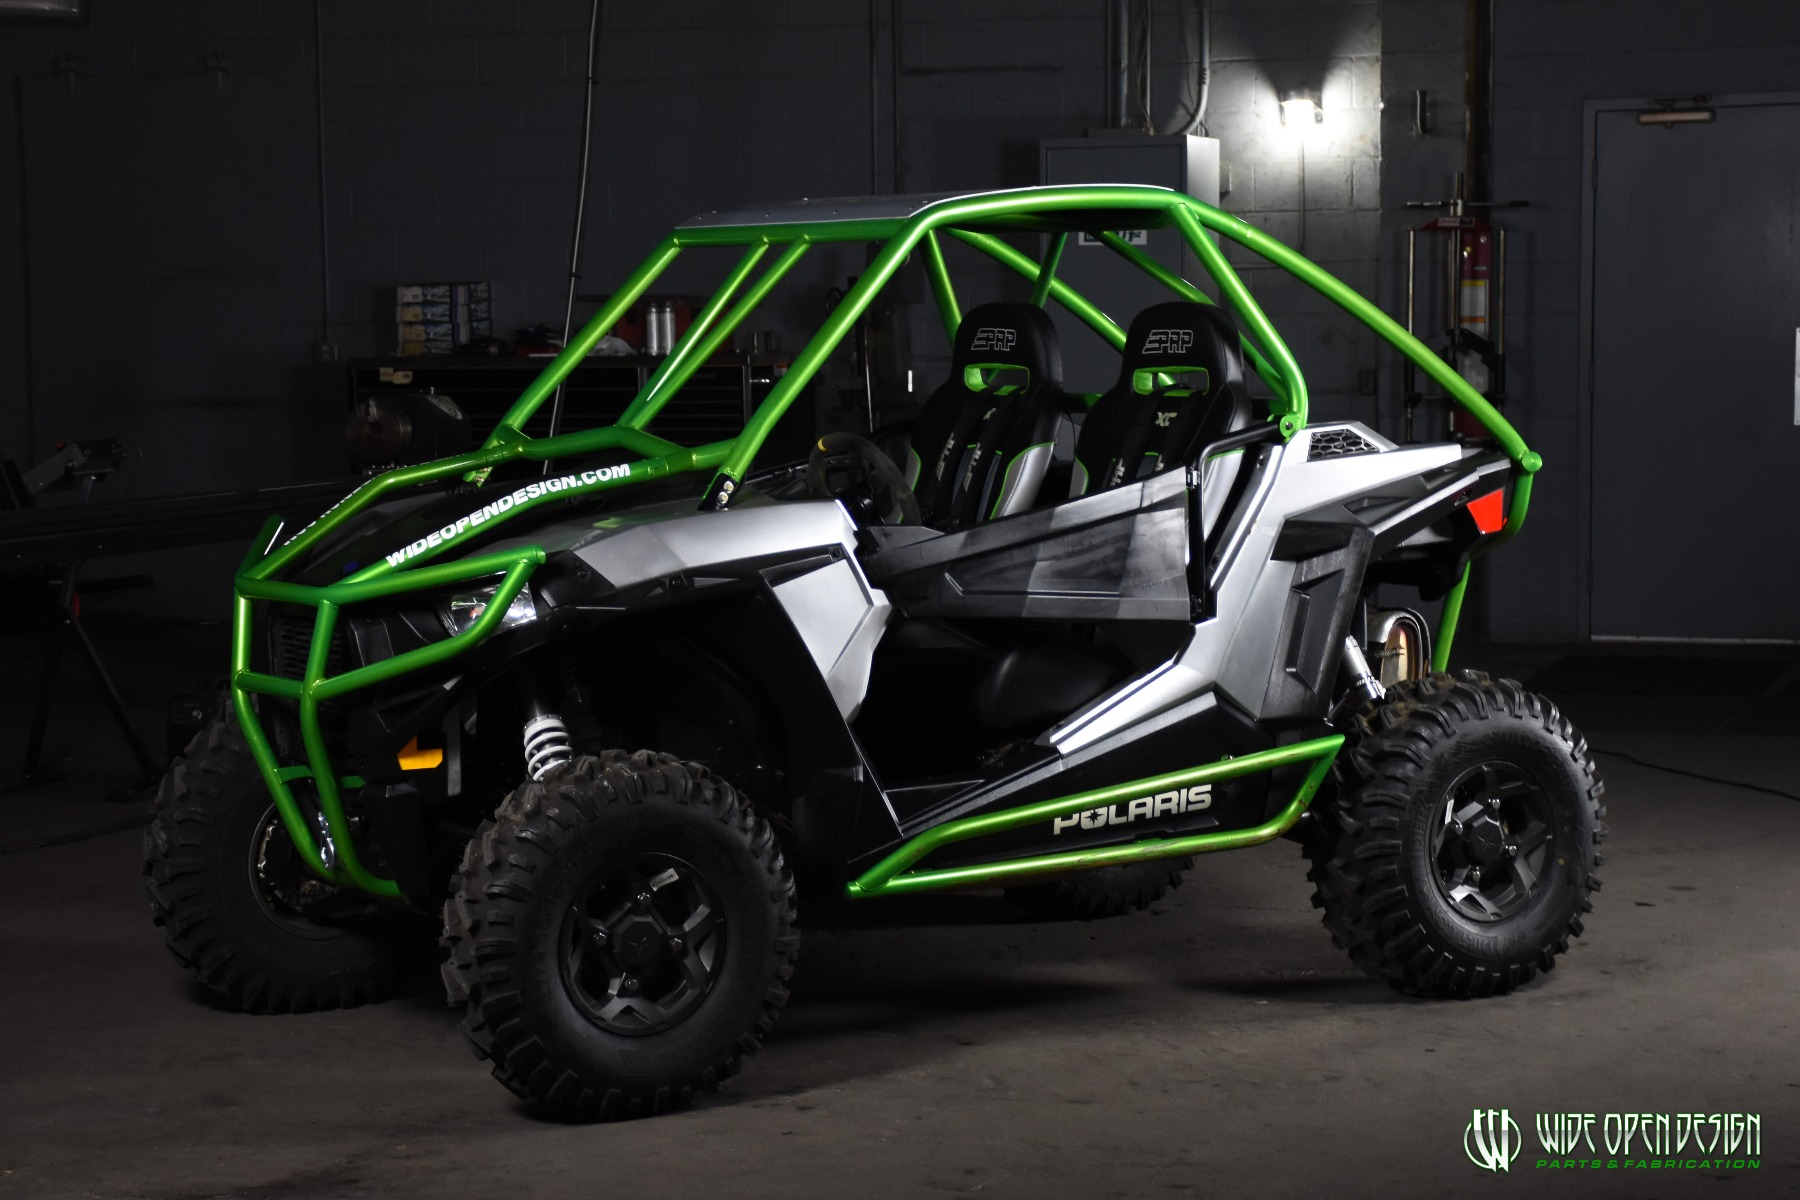 Jason's 1000s RZR with Wide Open Design Rolled Roof Cage, Front Bumper with Tie In, and Rocker Guards 10